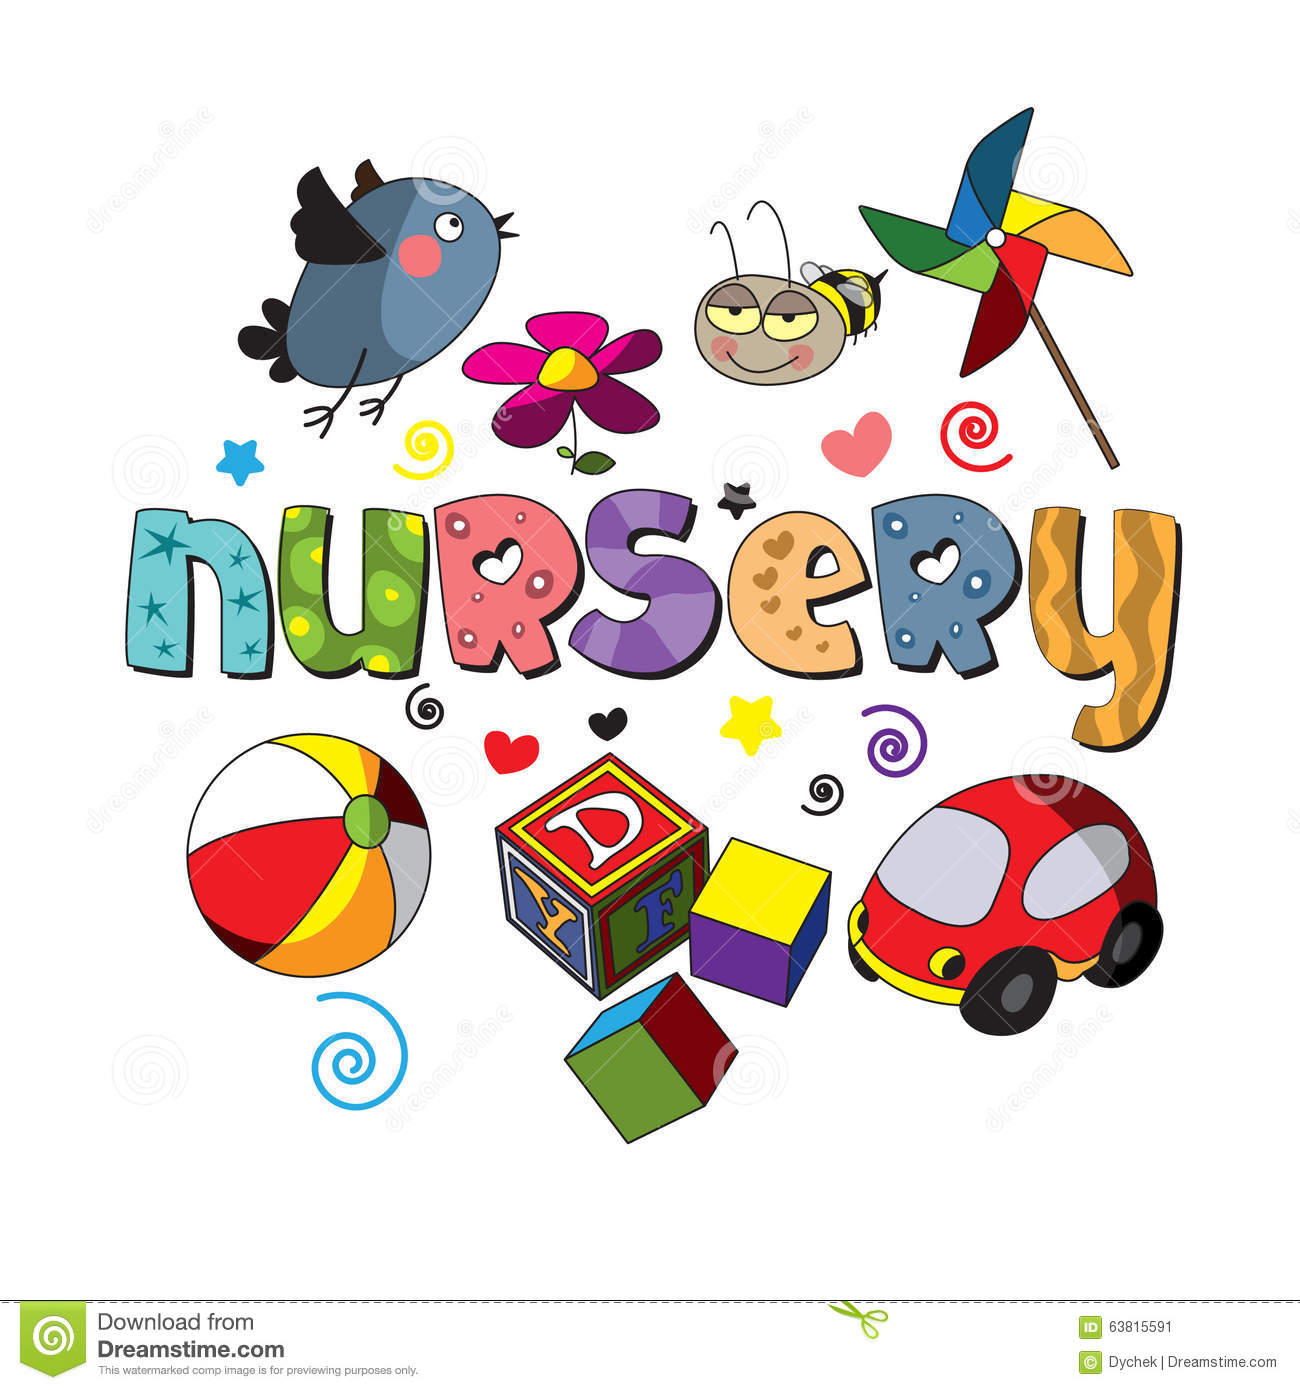 Church Nursery Pictures Google Search: Inspire Family Fellowship